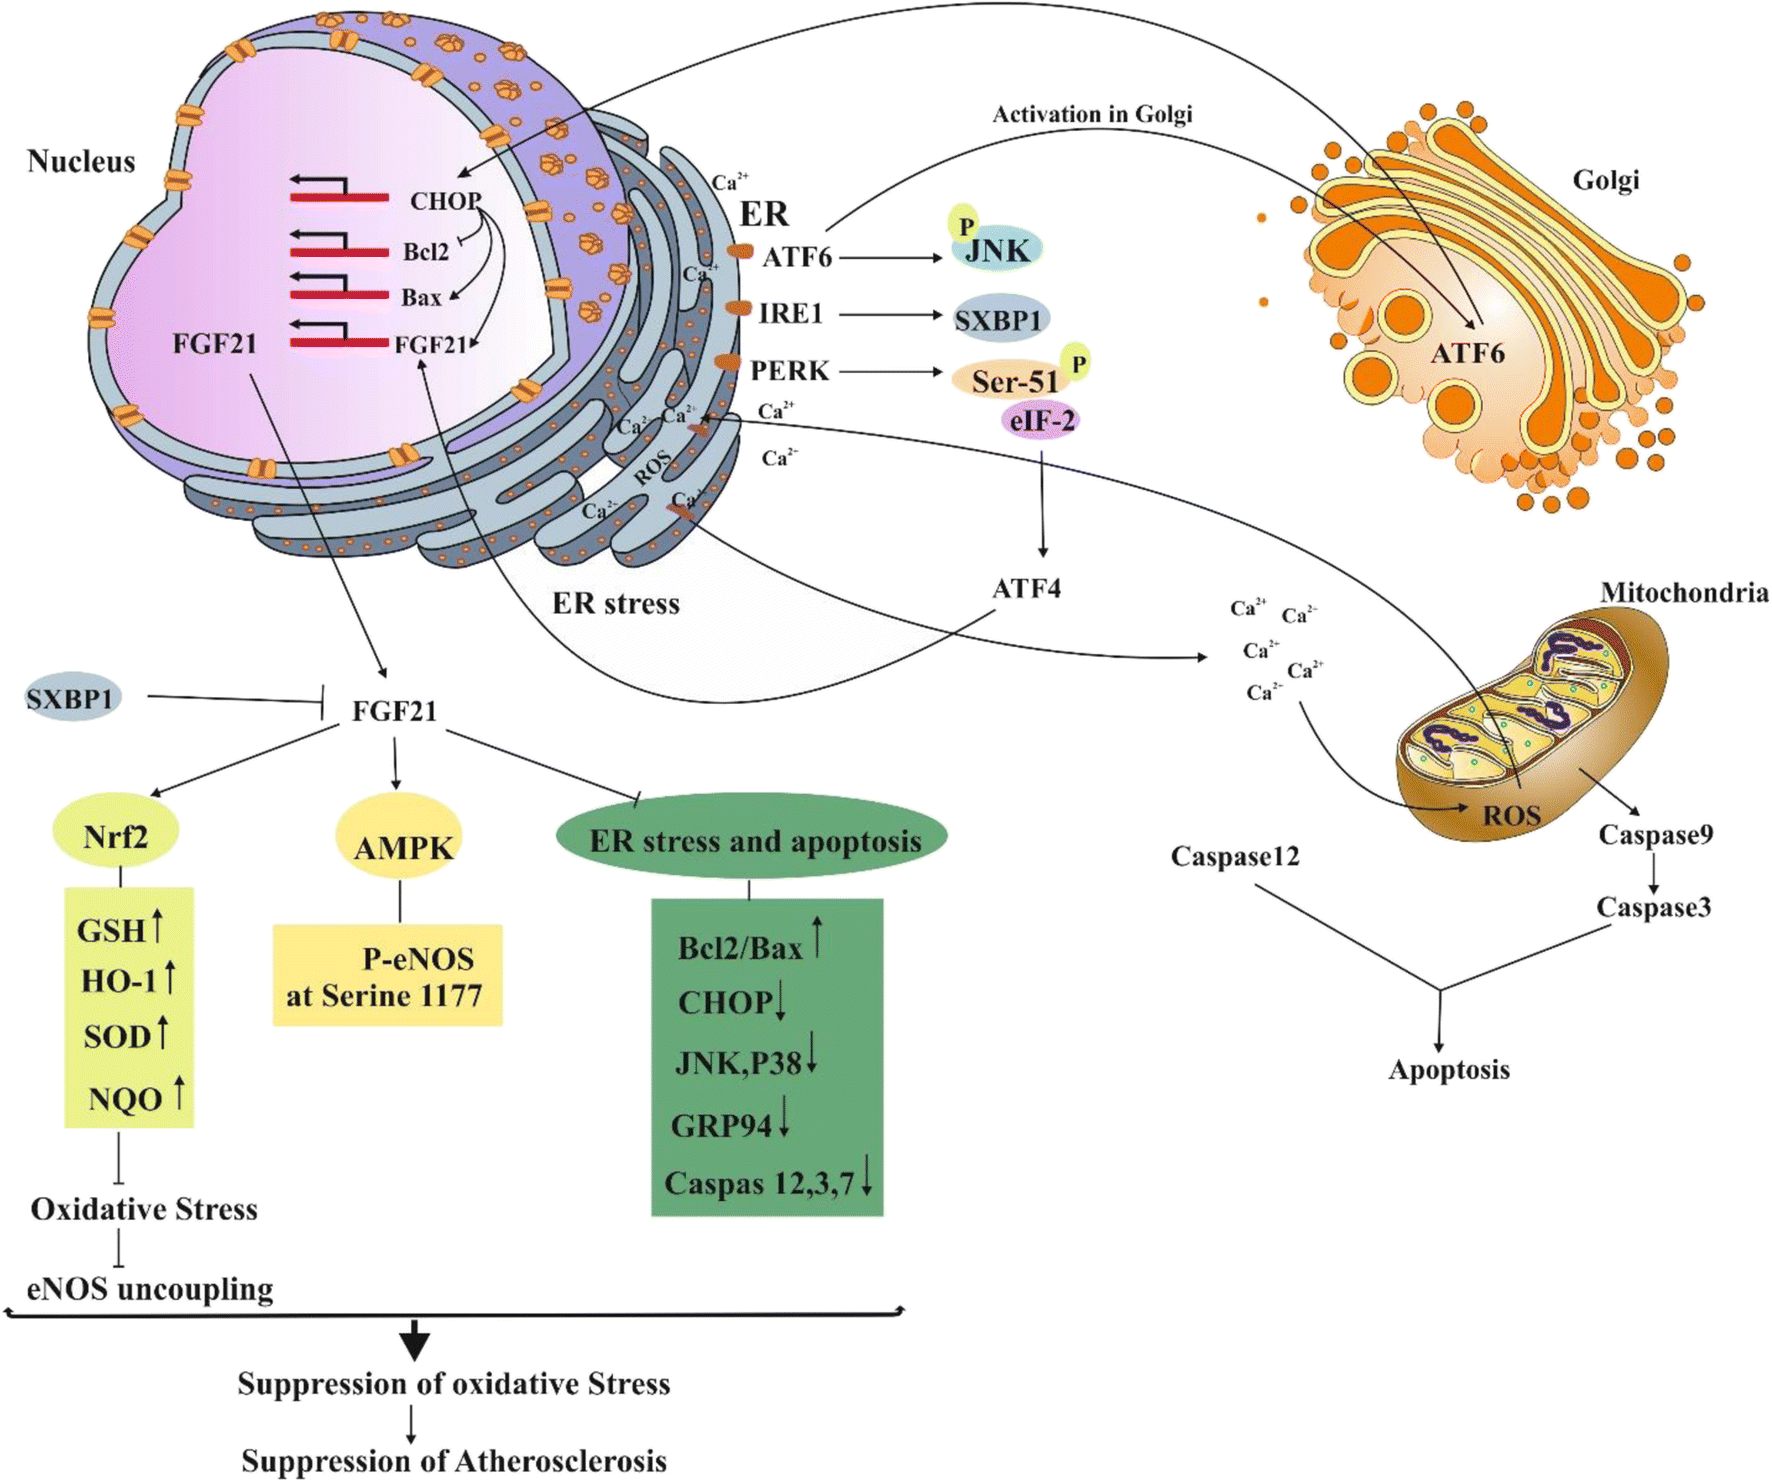 The roles of FGF21 in atherosclerosis pathogenesis